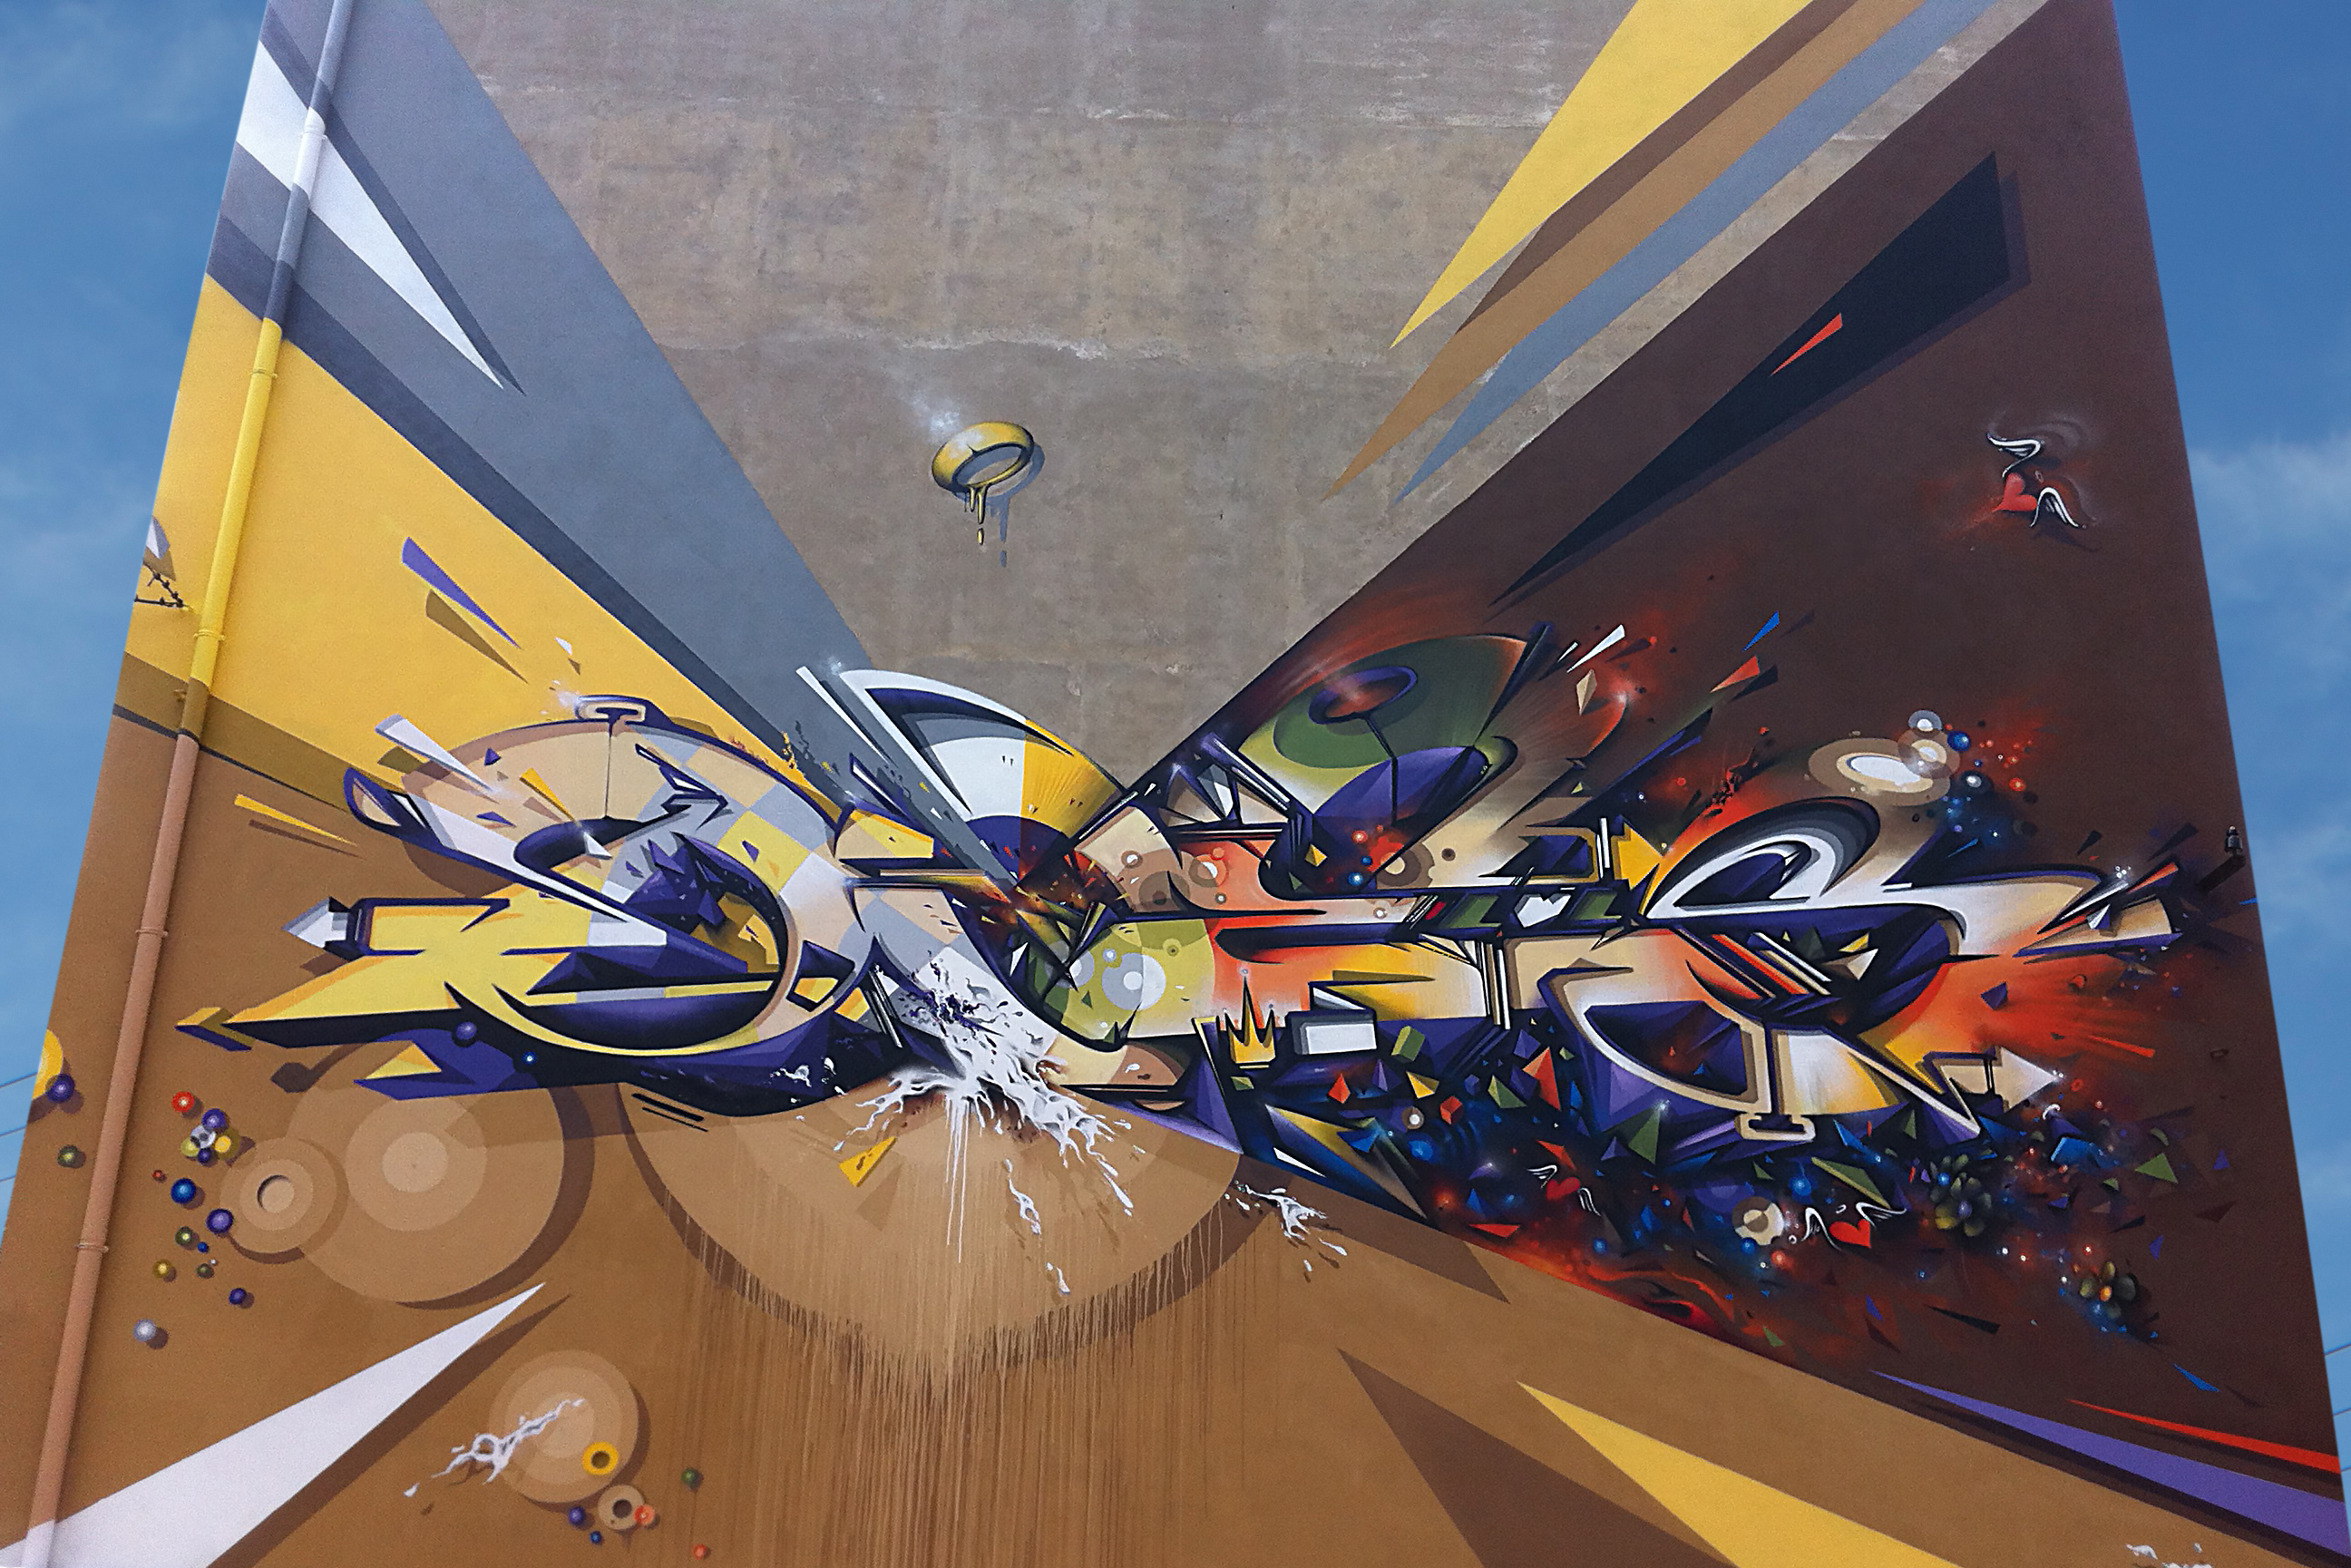 A work by Does - Frontier bologna italy detail 2